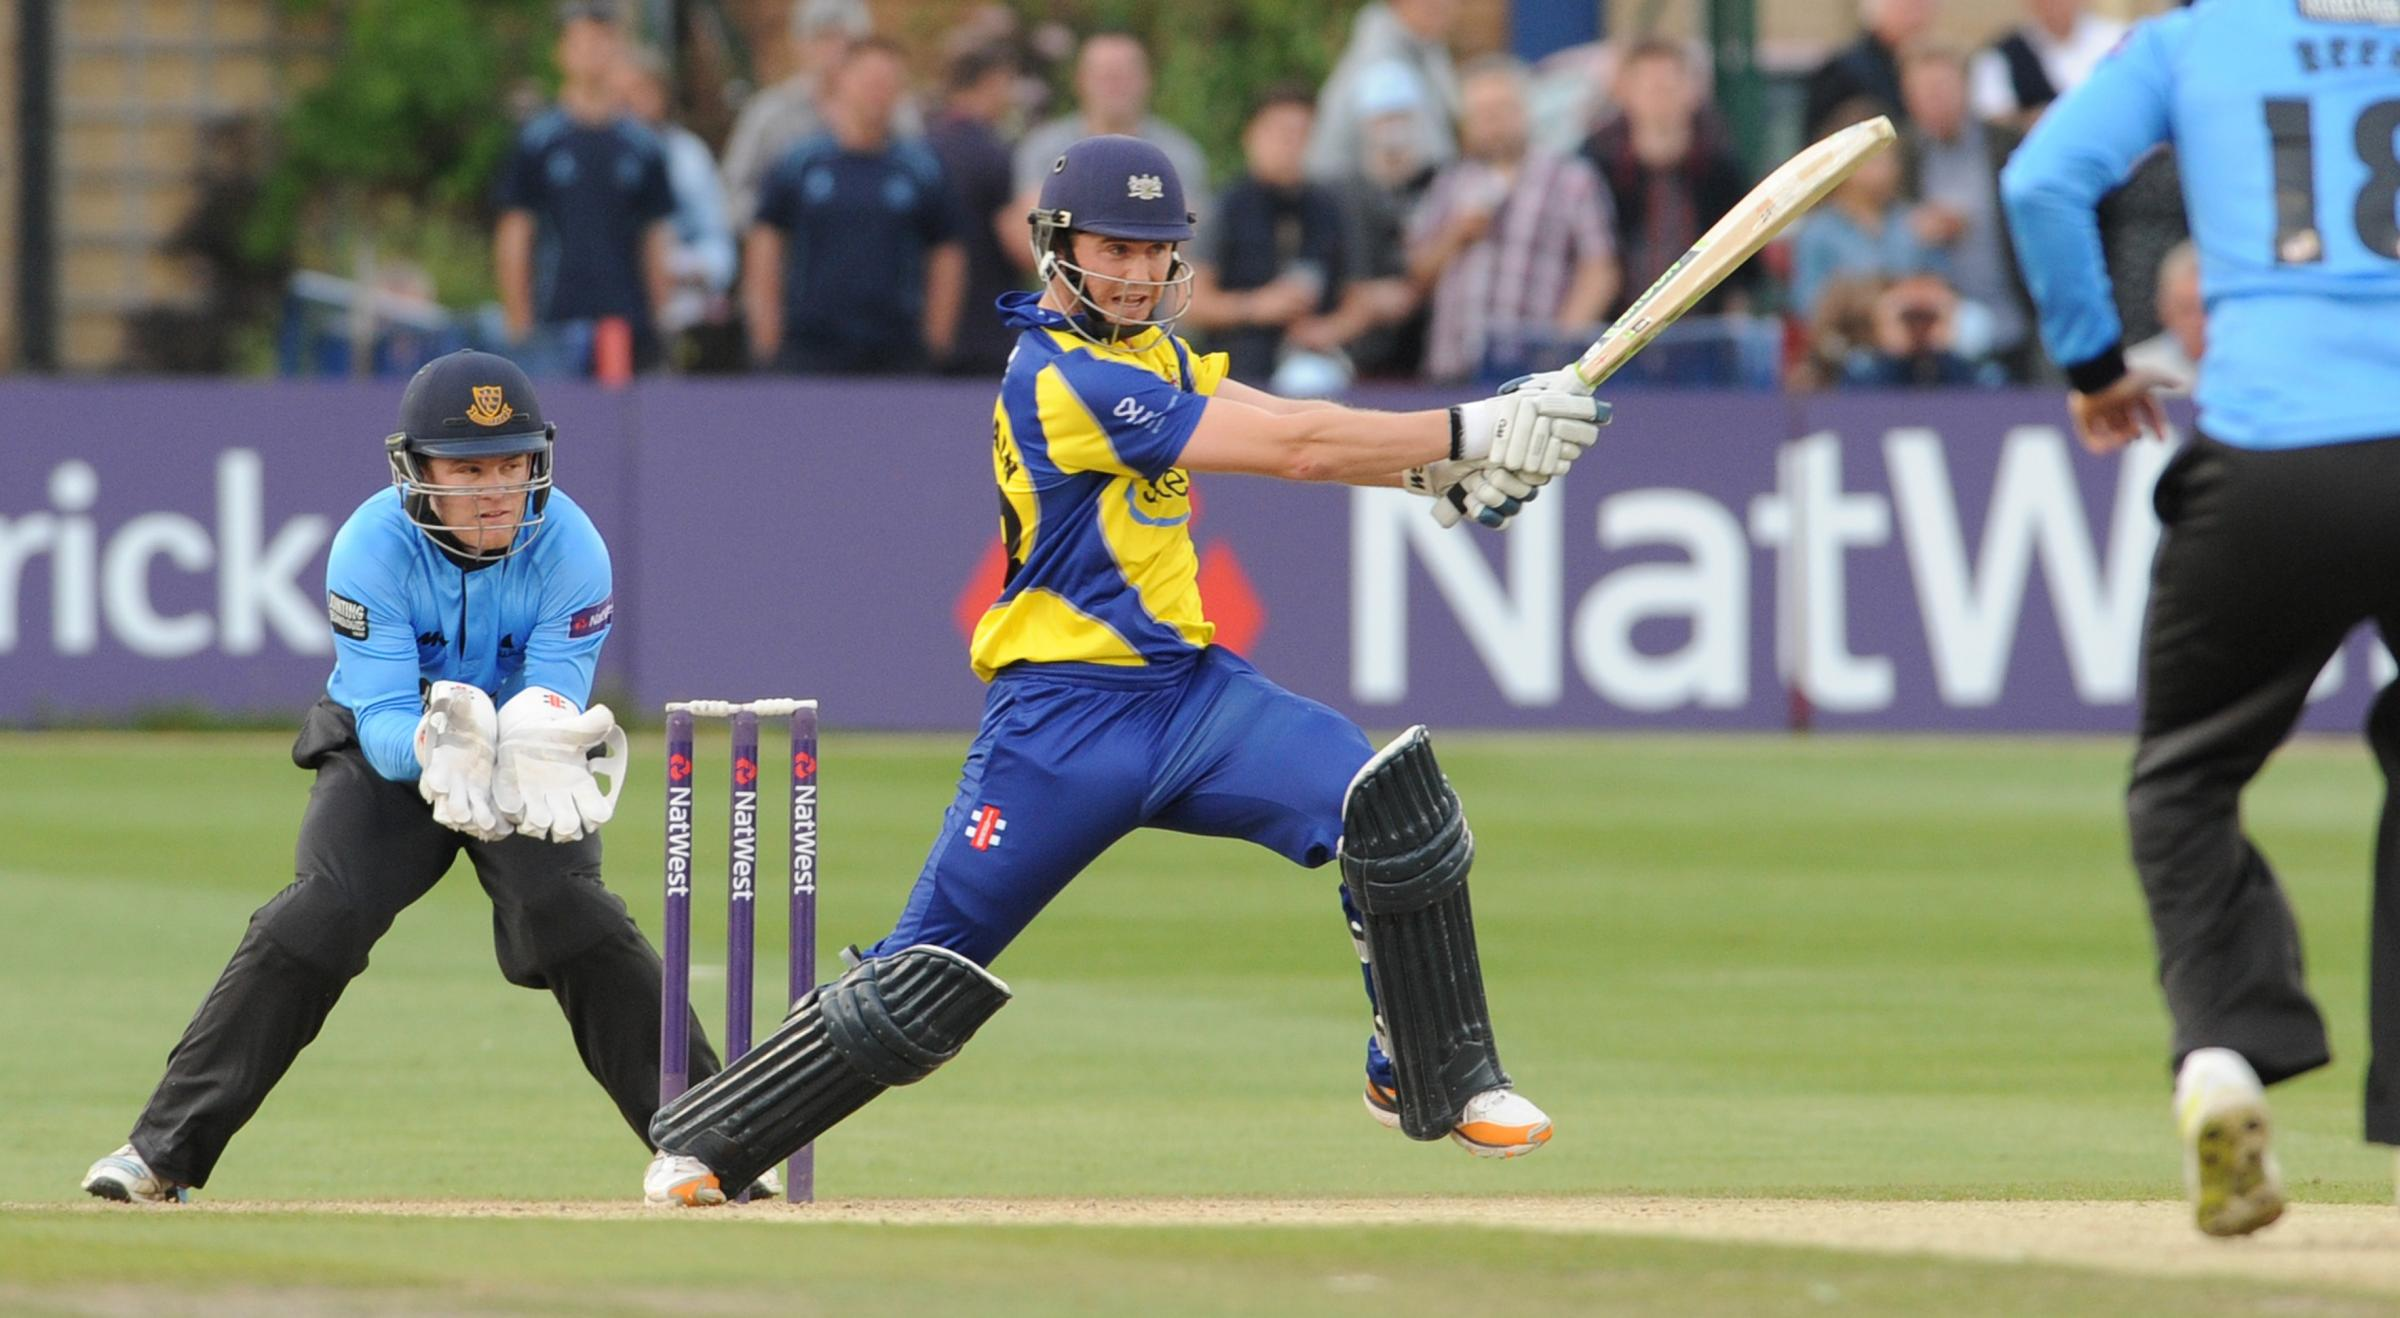 Ian Cockbain scored 98 not out for Gloucestershire